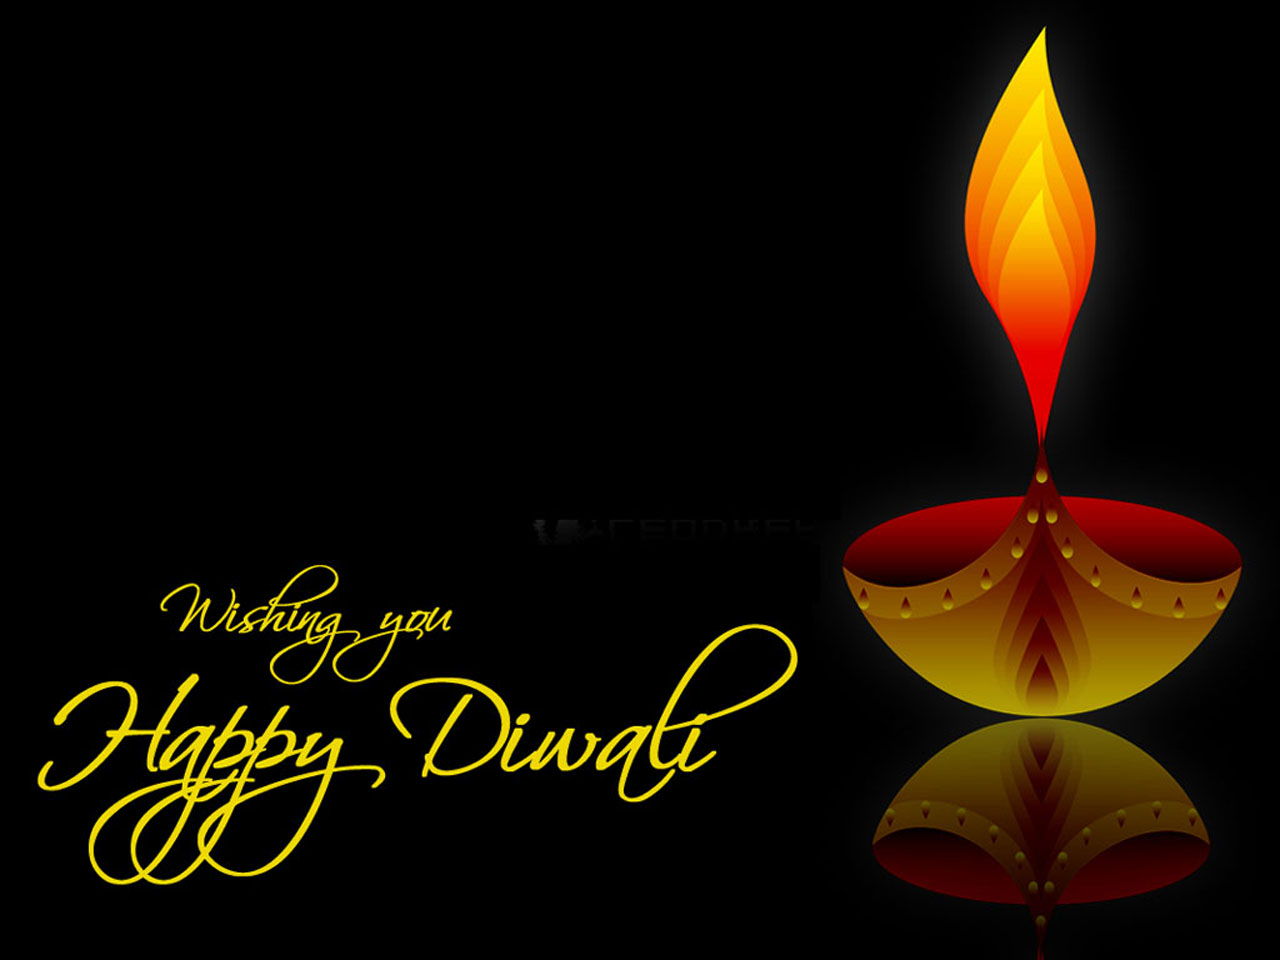 48-Happy Diwali Wishes